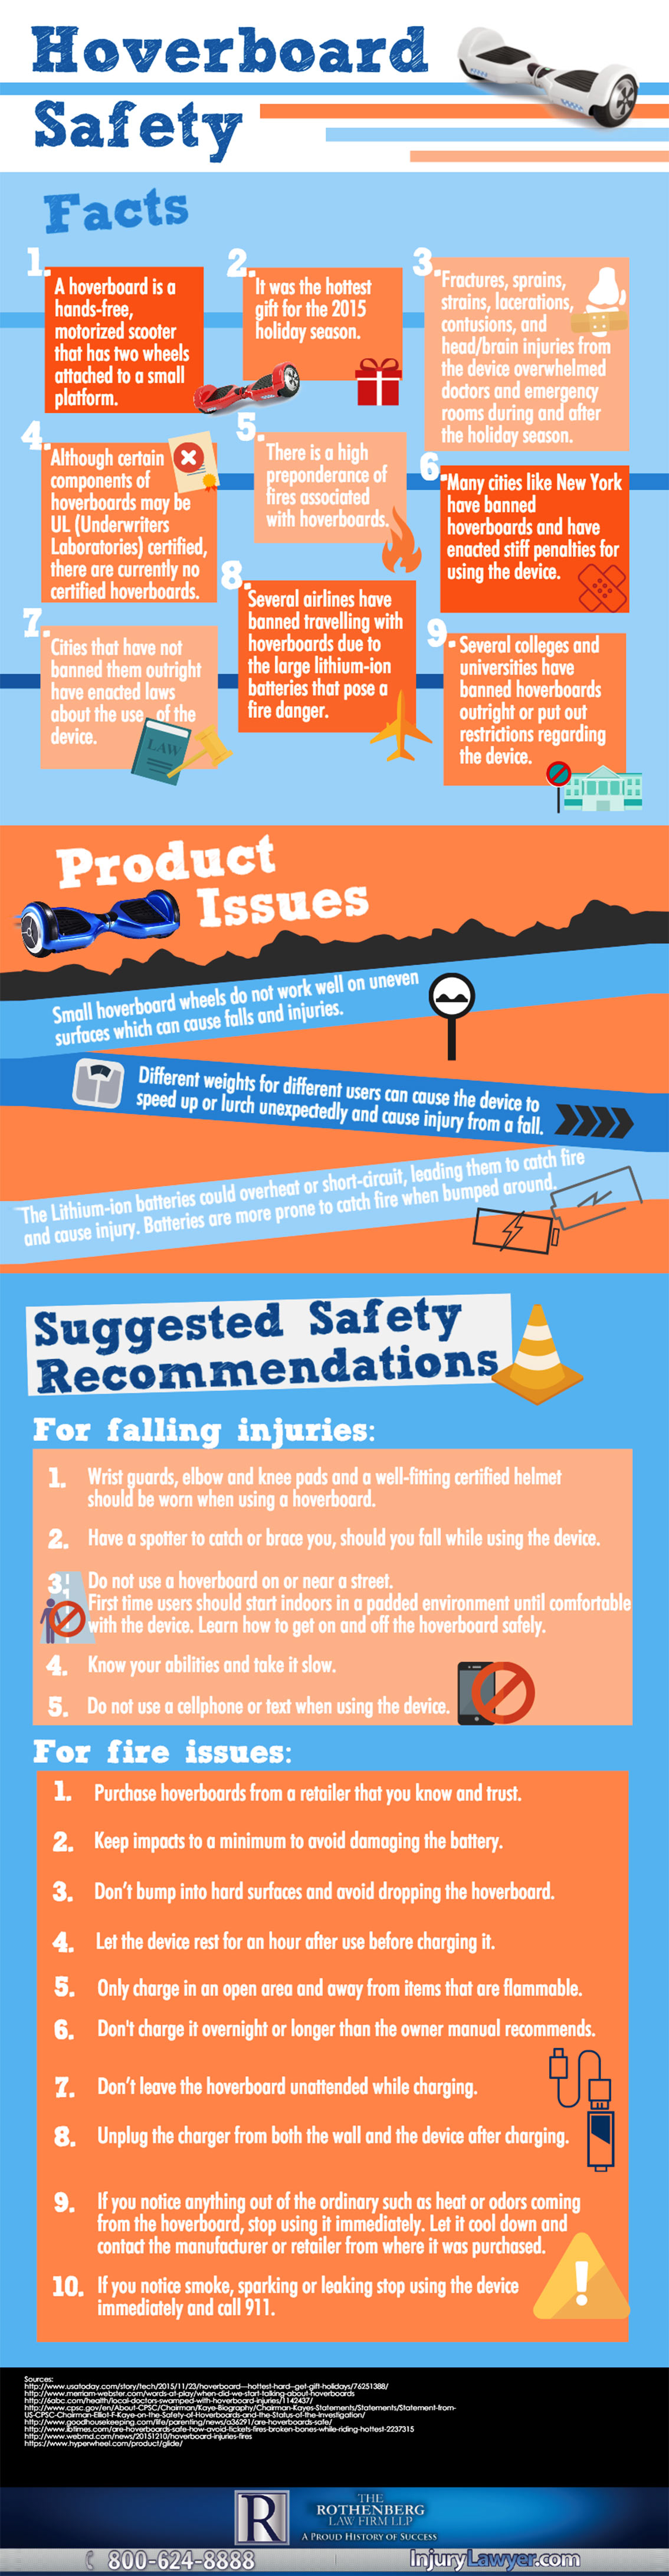 Hoverboard Safety Tips Infographic